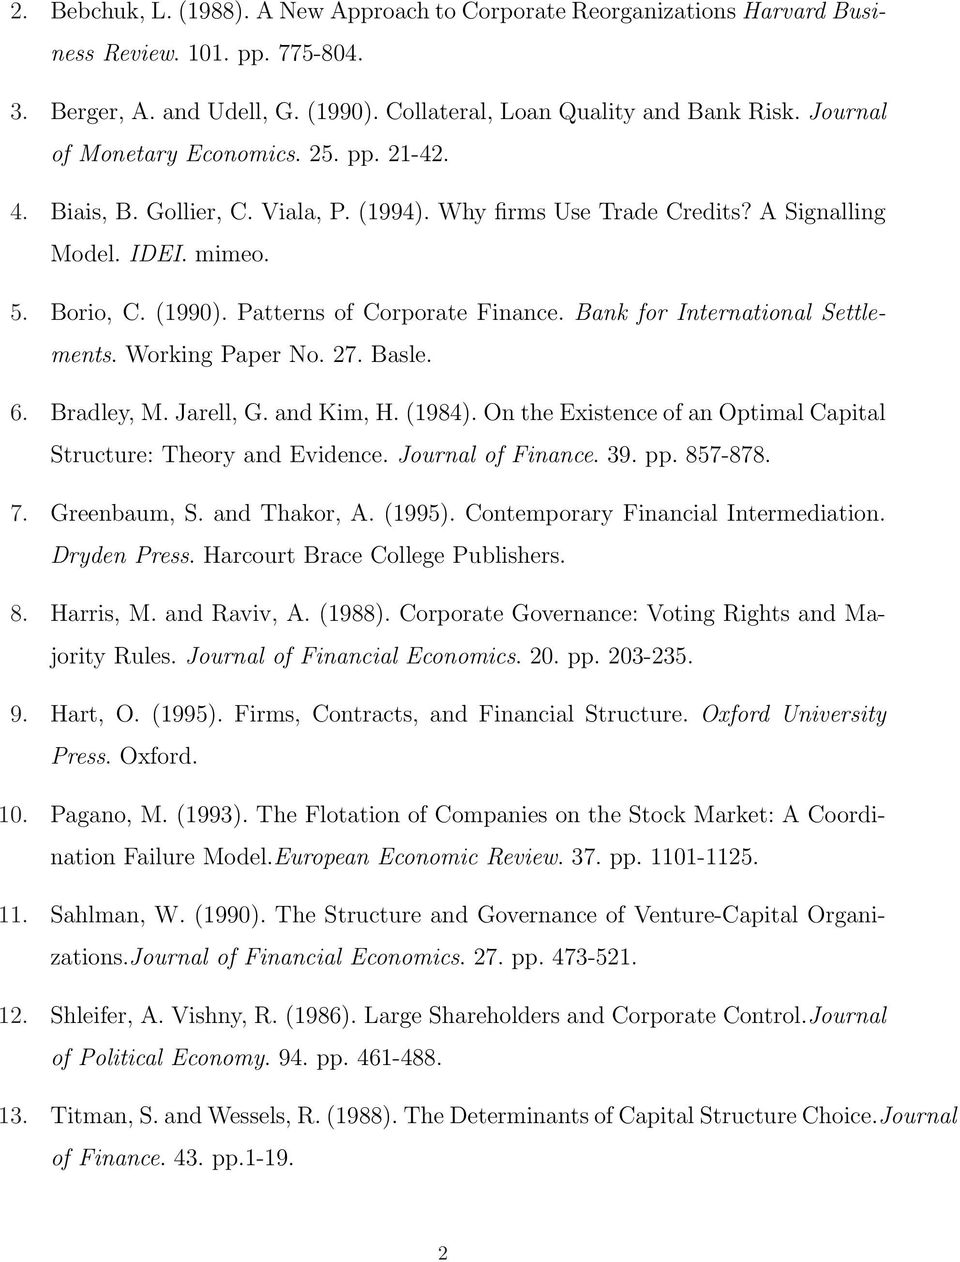 Patterns of Corporate Finance. Bank for International Settlements. Working Paper No. 27. Basle. 6. Bradley, M. Jarell, G. and Kim, H. (1984).